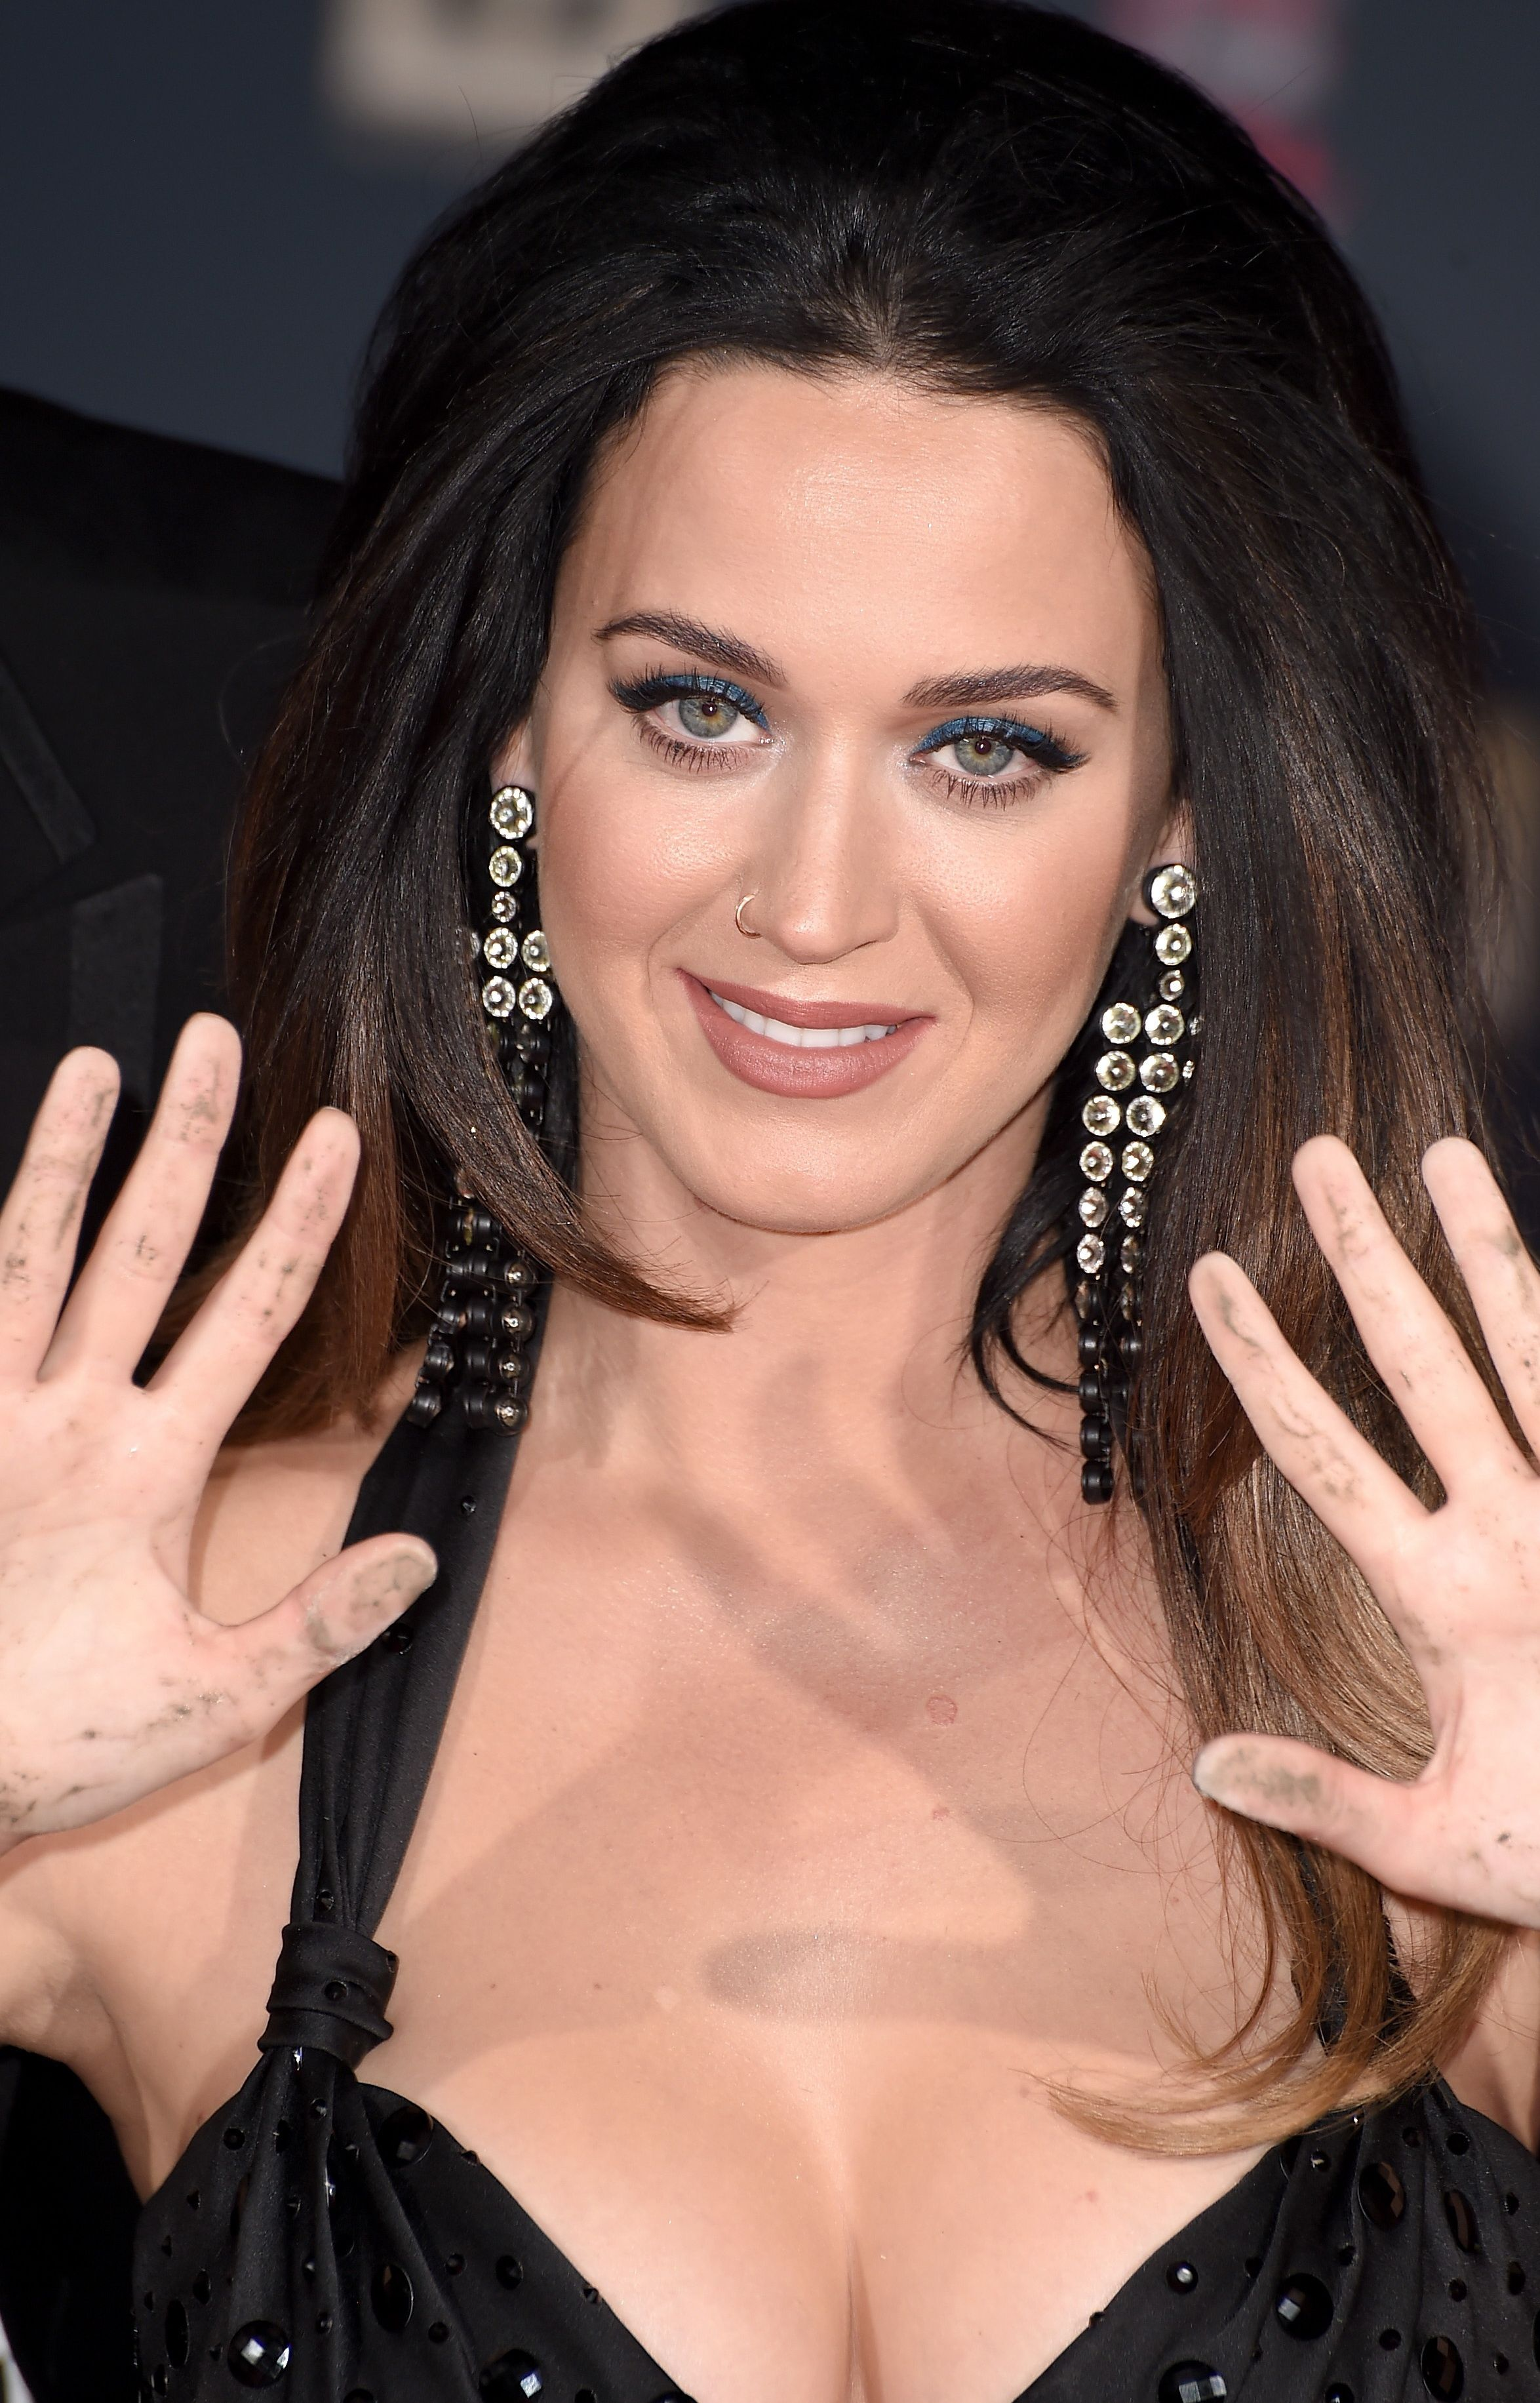 Katy perry cleavage question